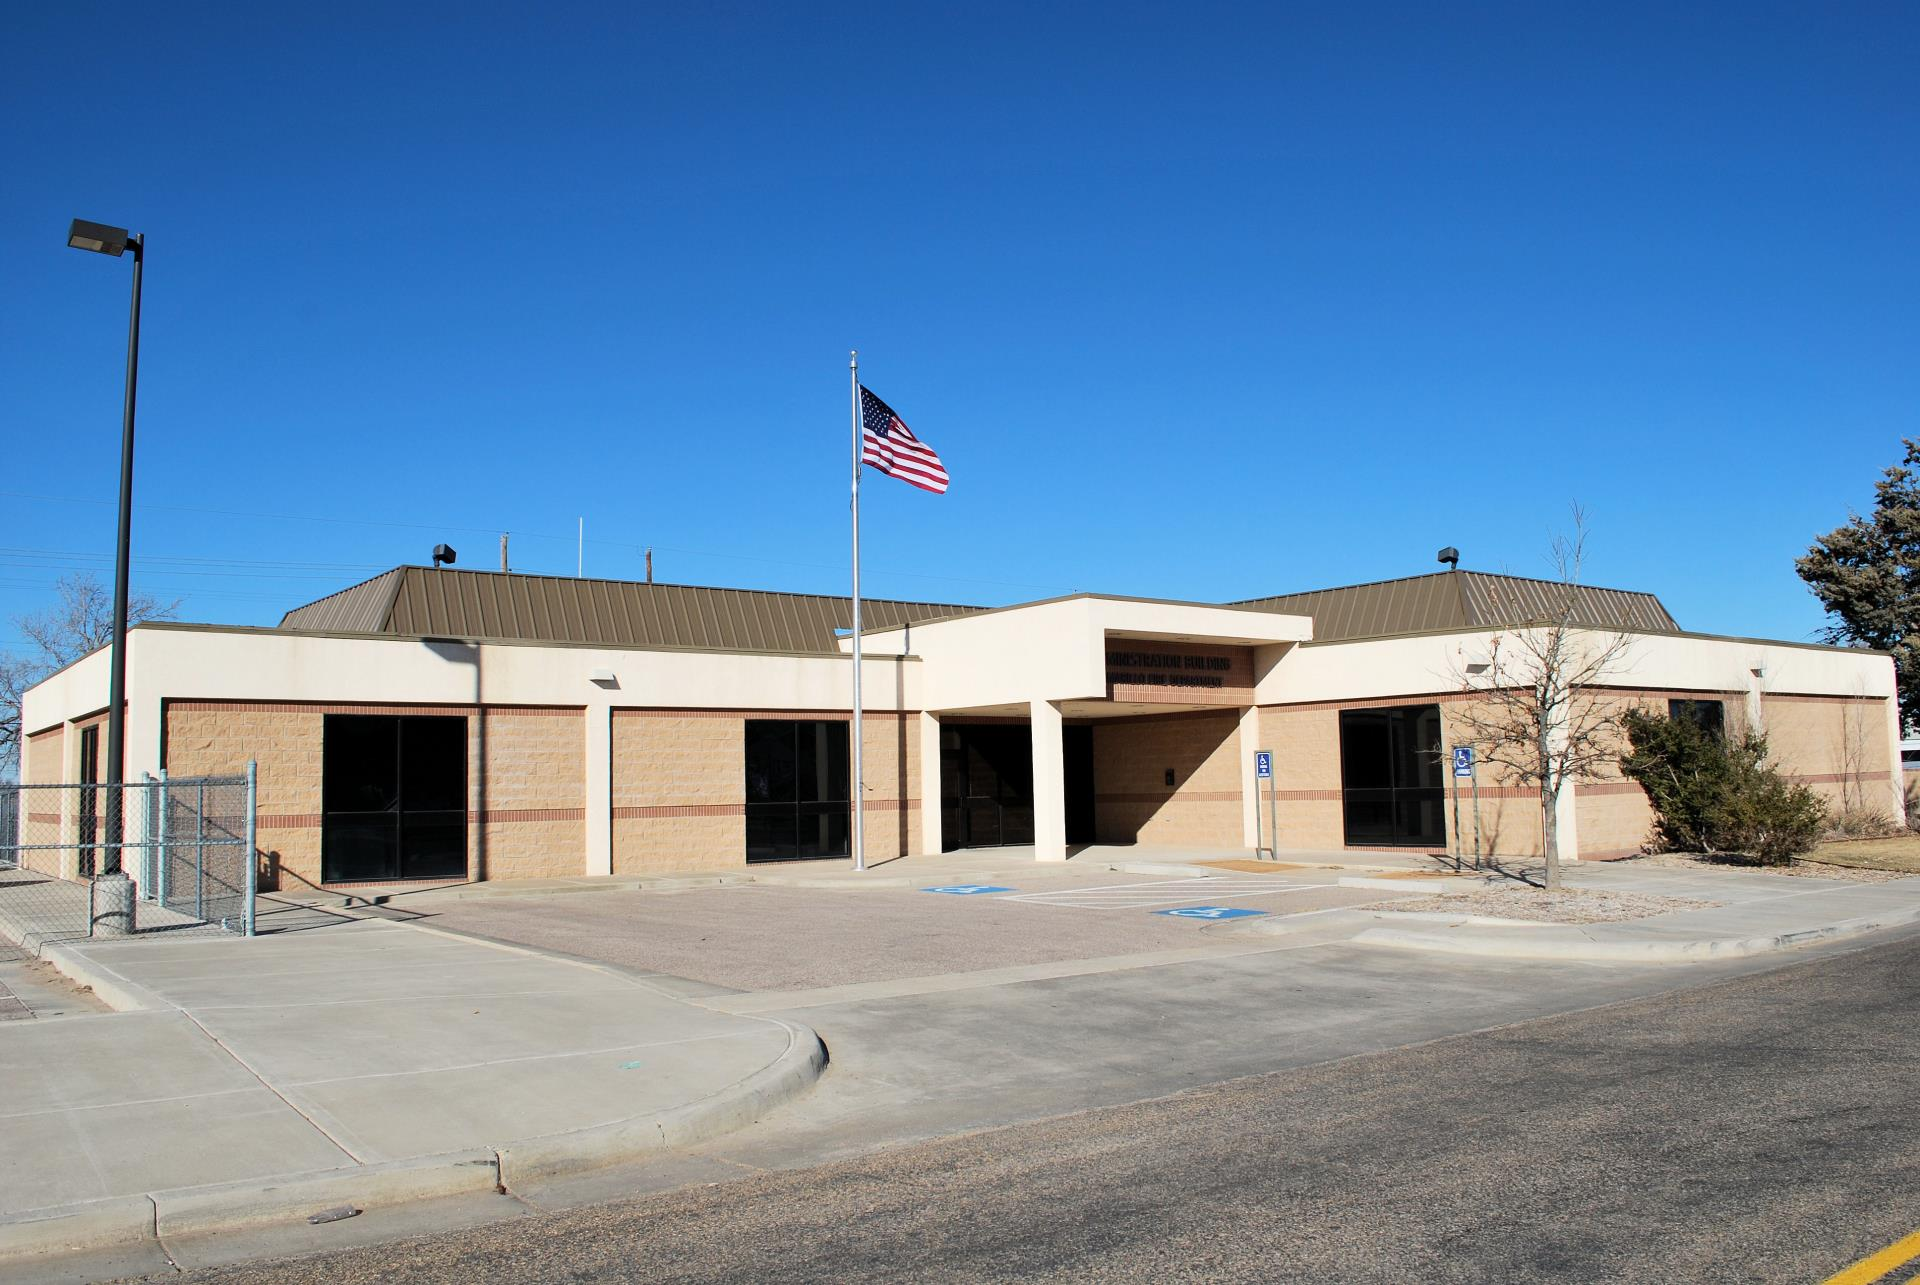 Fire stations city of amarillo tx administration building malvernweather Choice Image